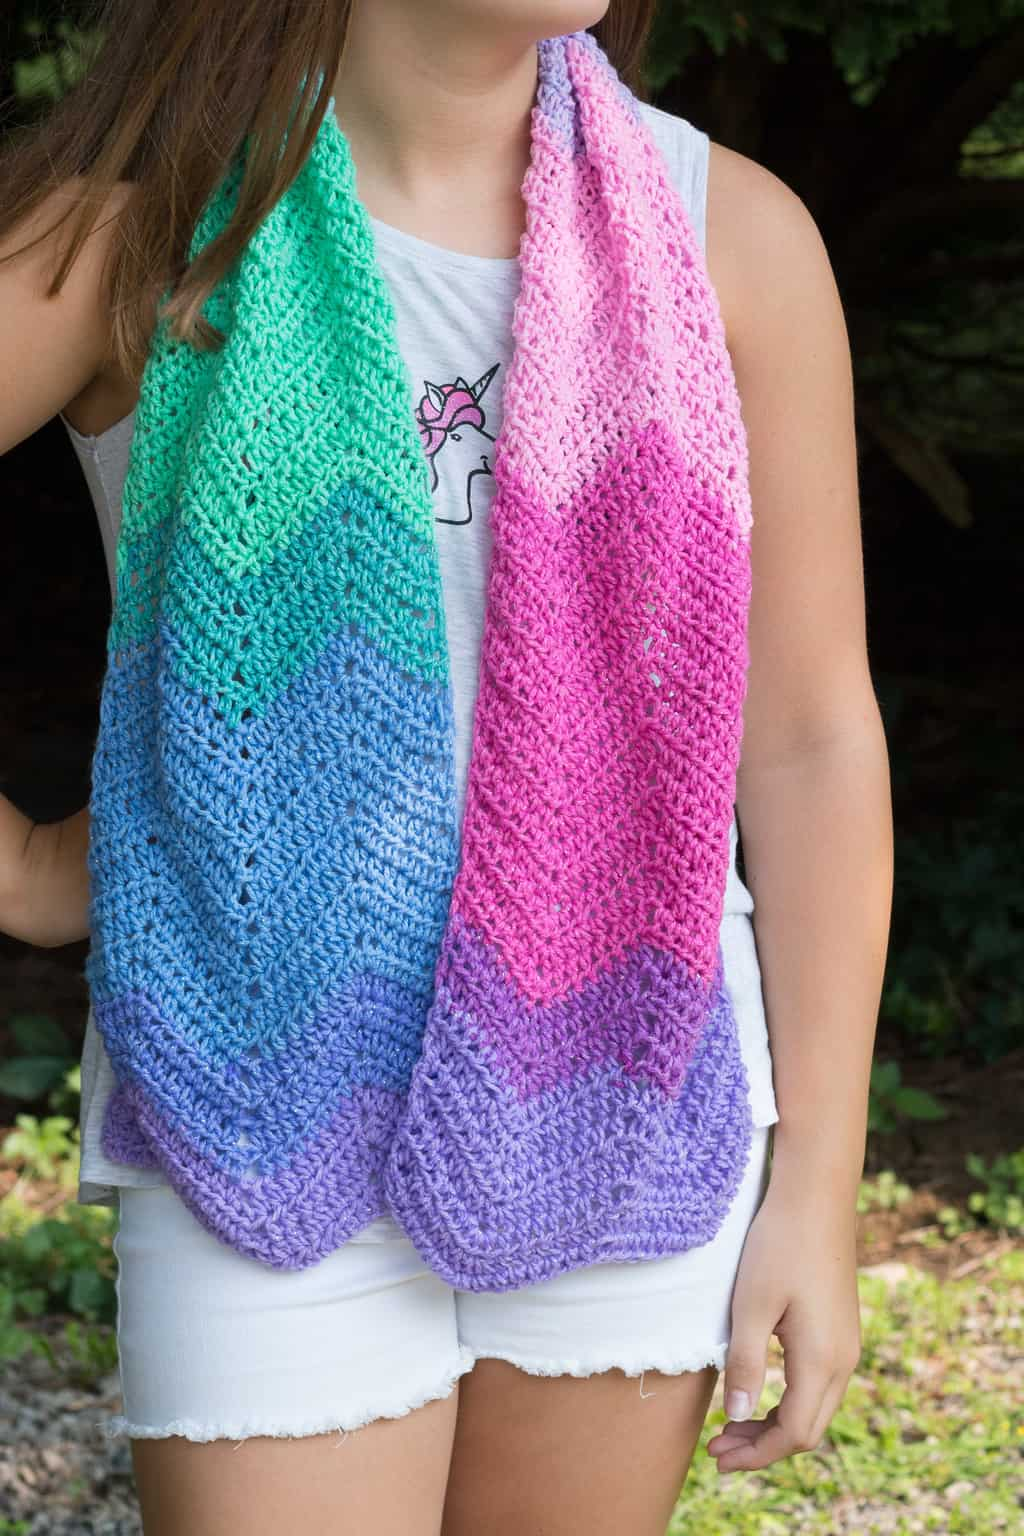 How to crochet a unicorn scarf